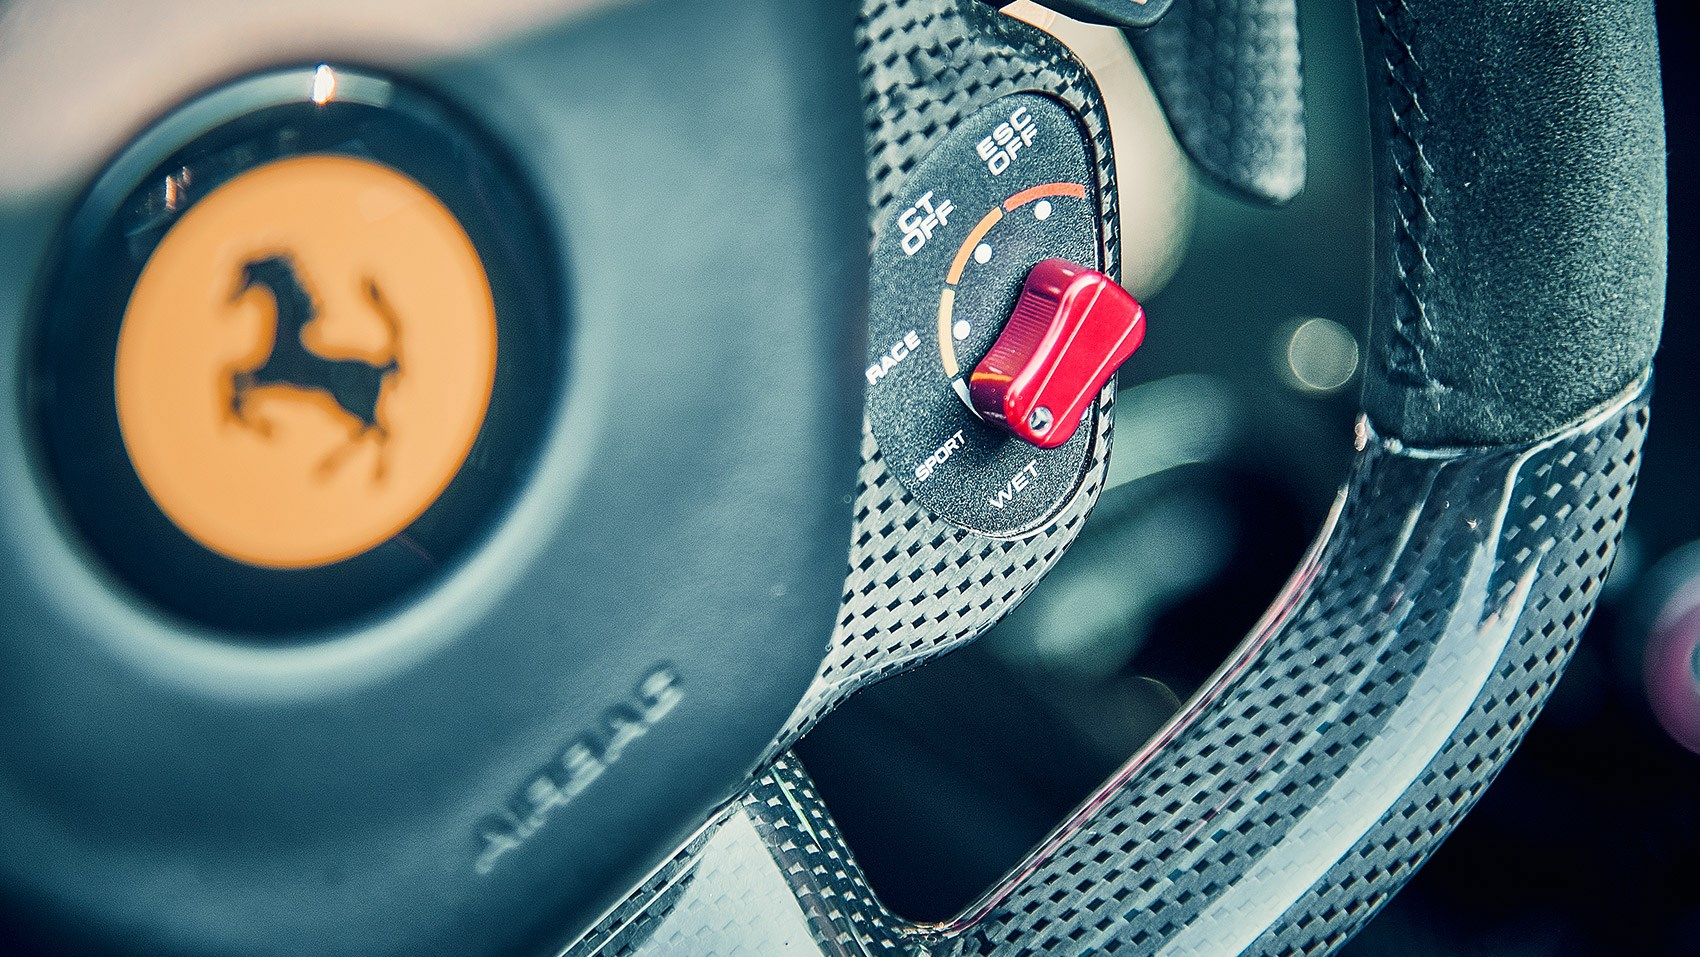 LaFerrari Aperta manettino switch in the interior